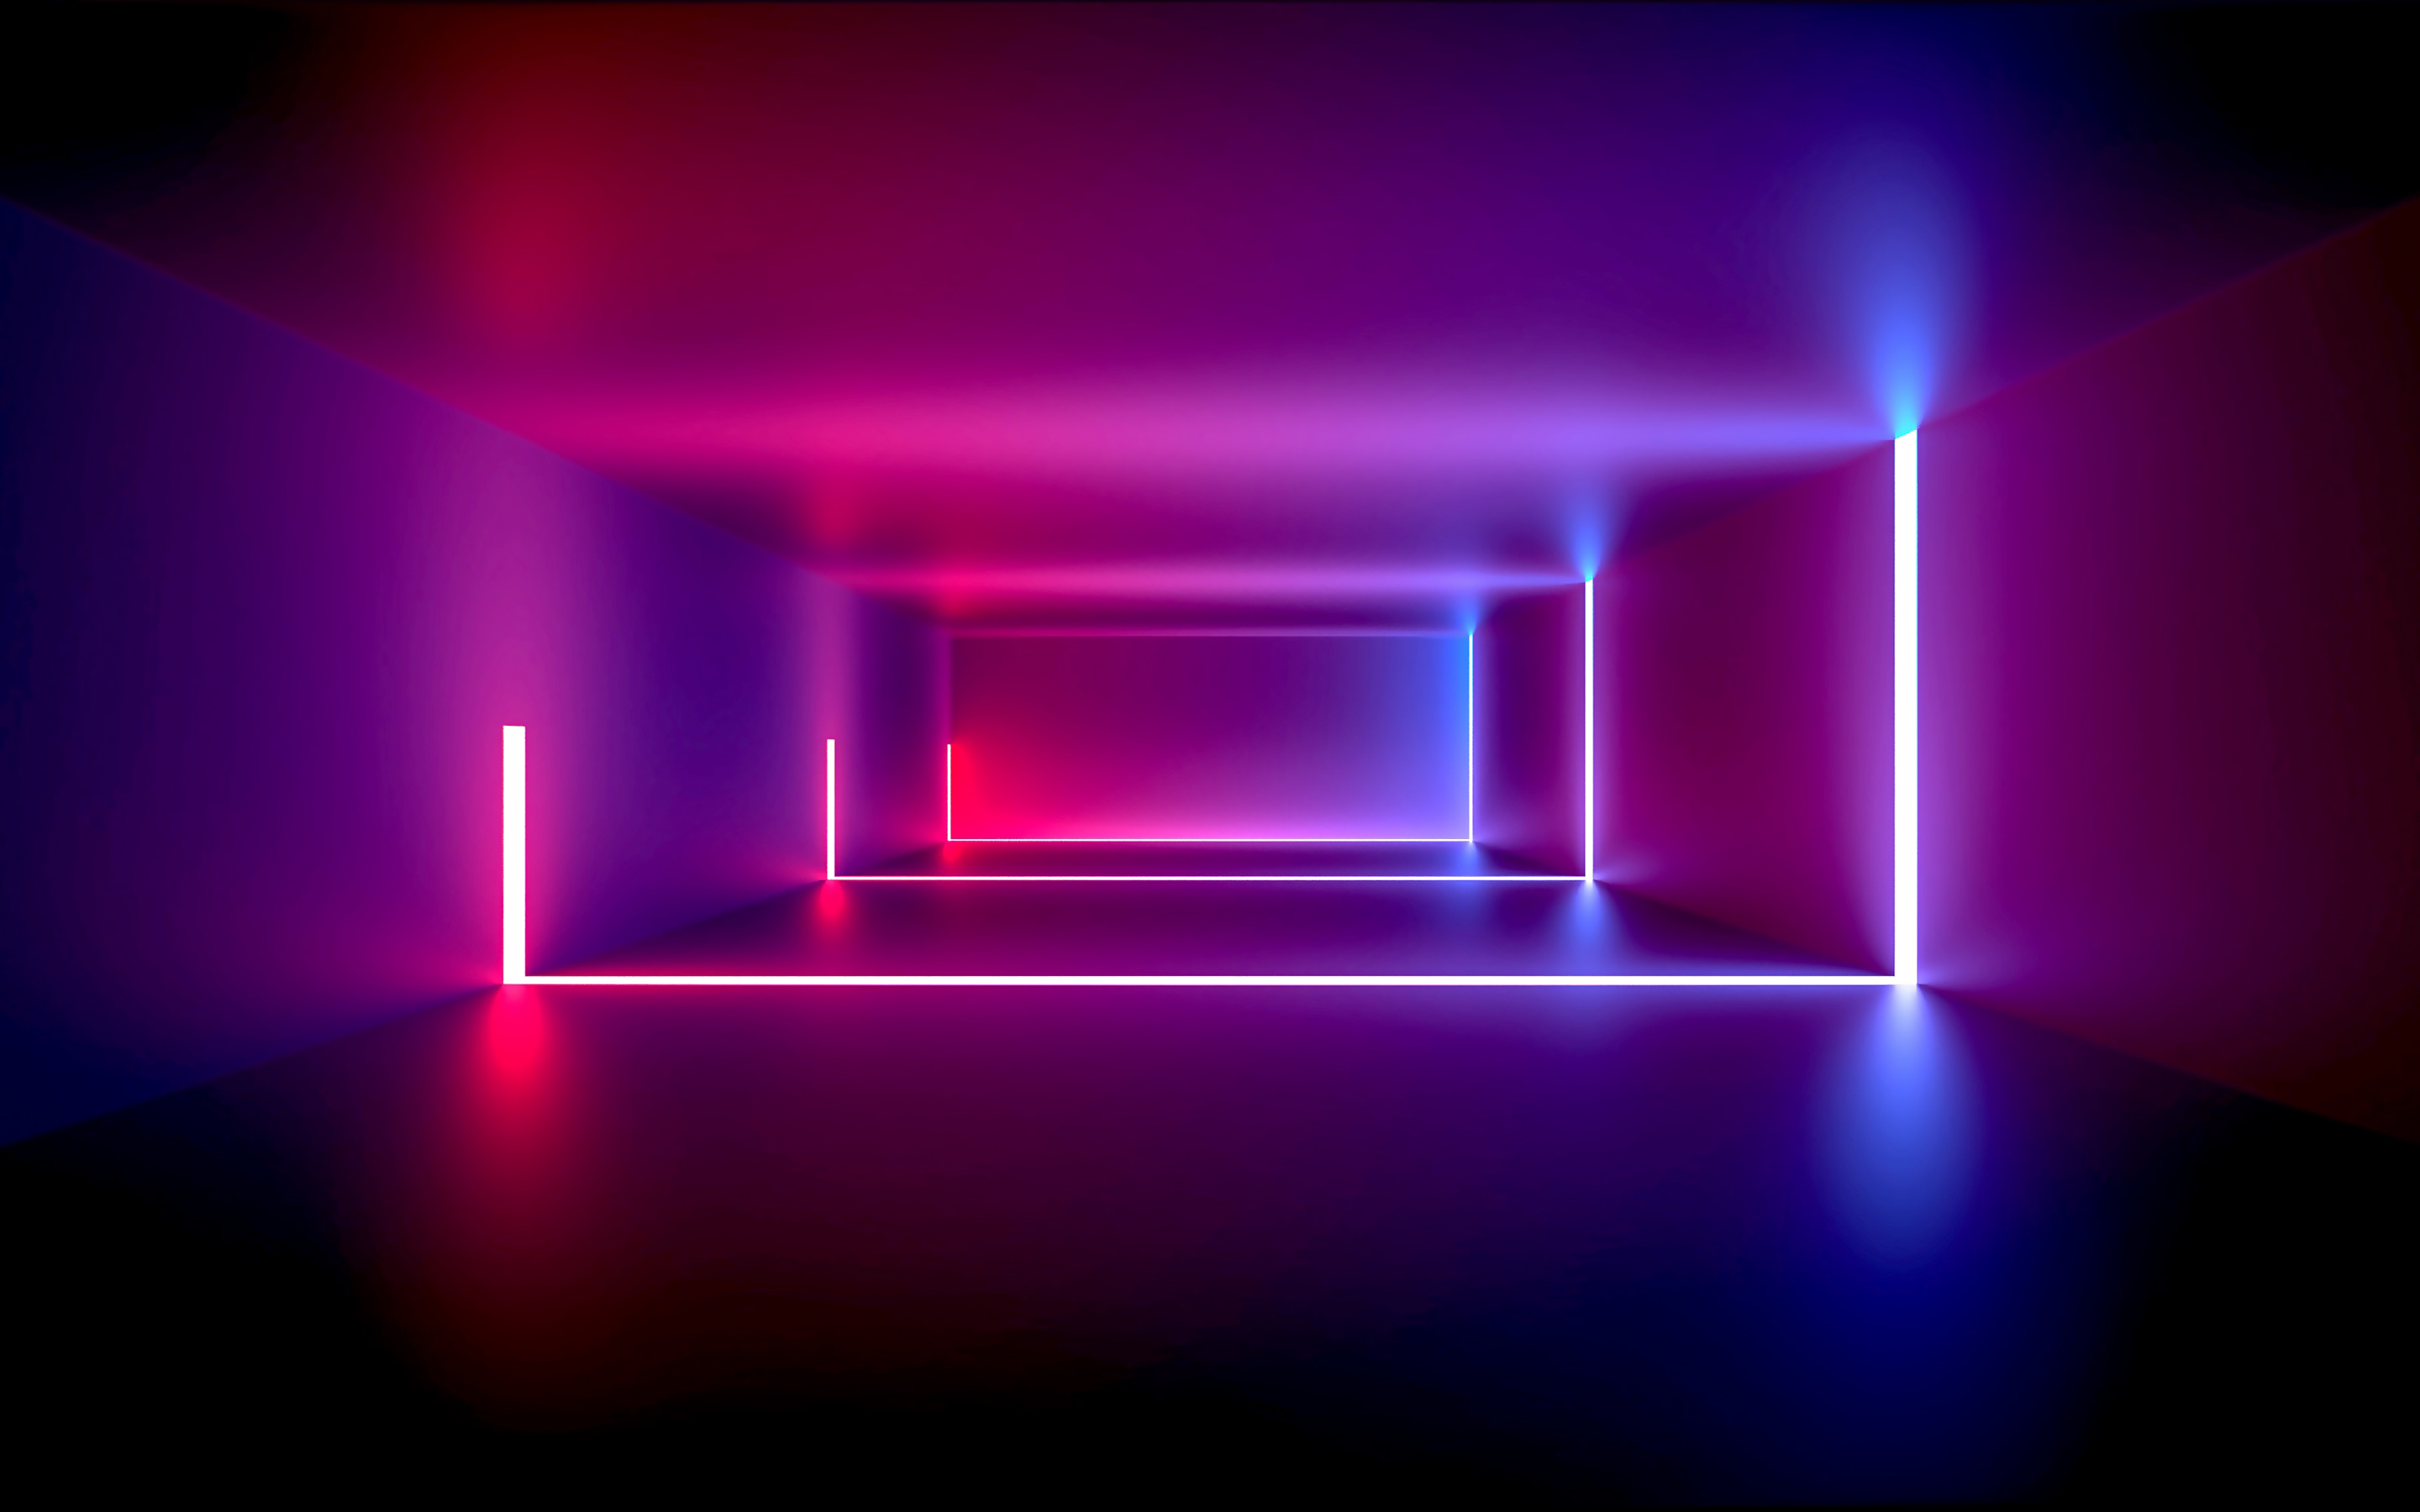 Wallpaper Room with neon lights